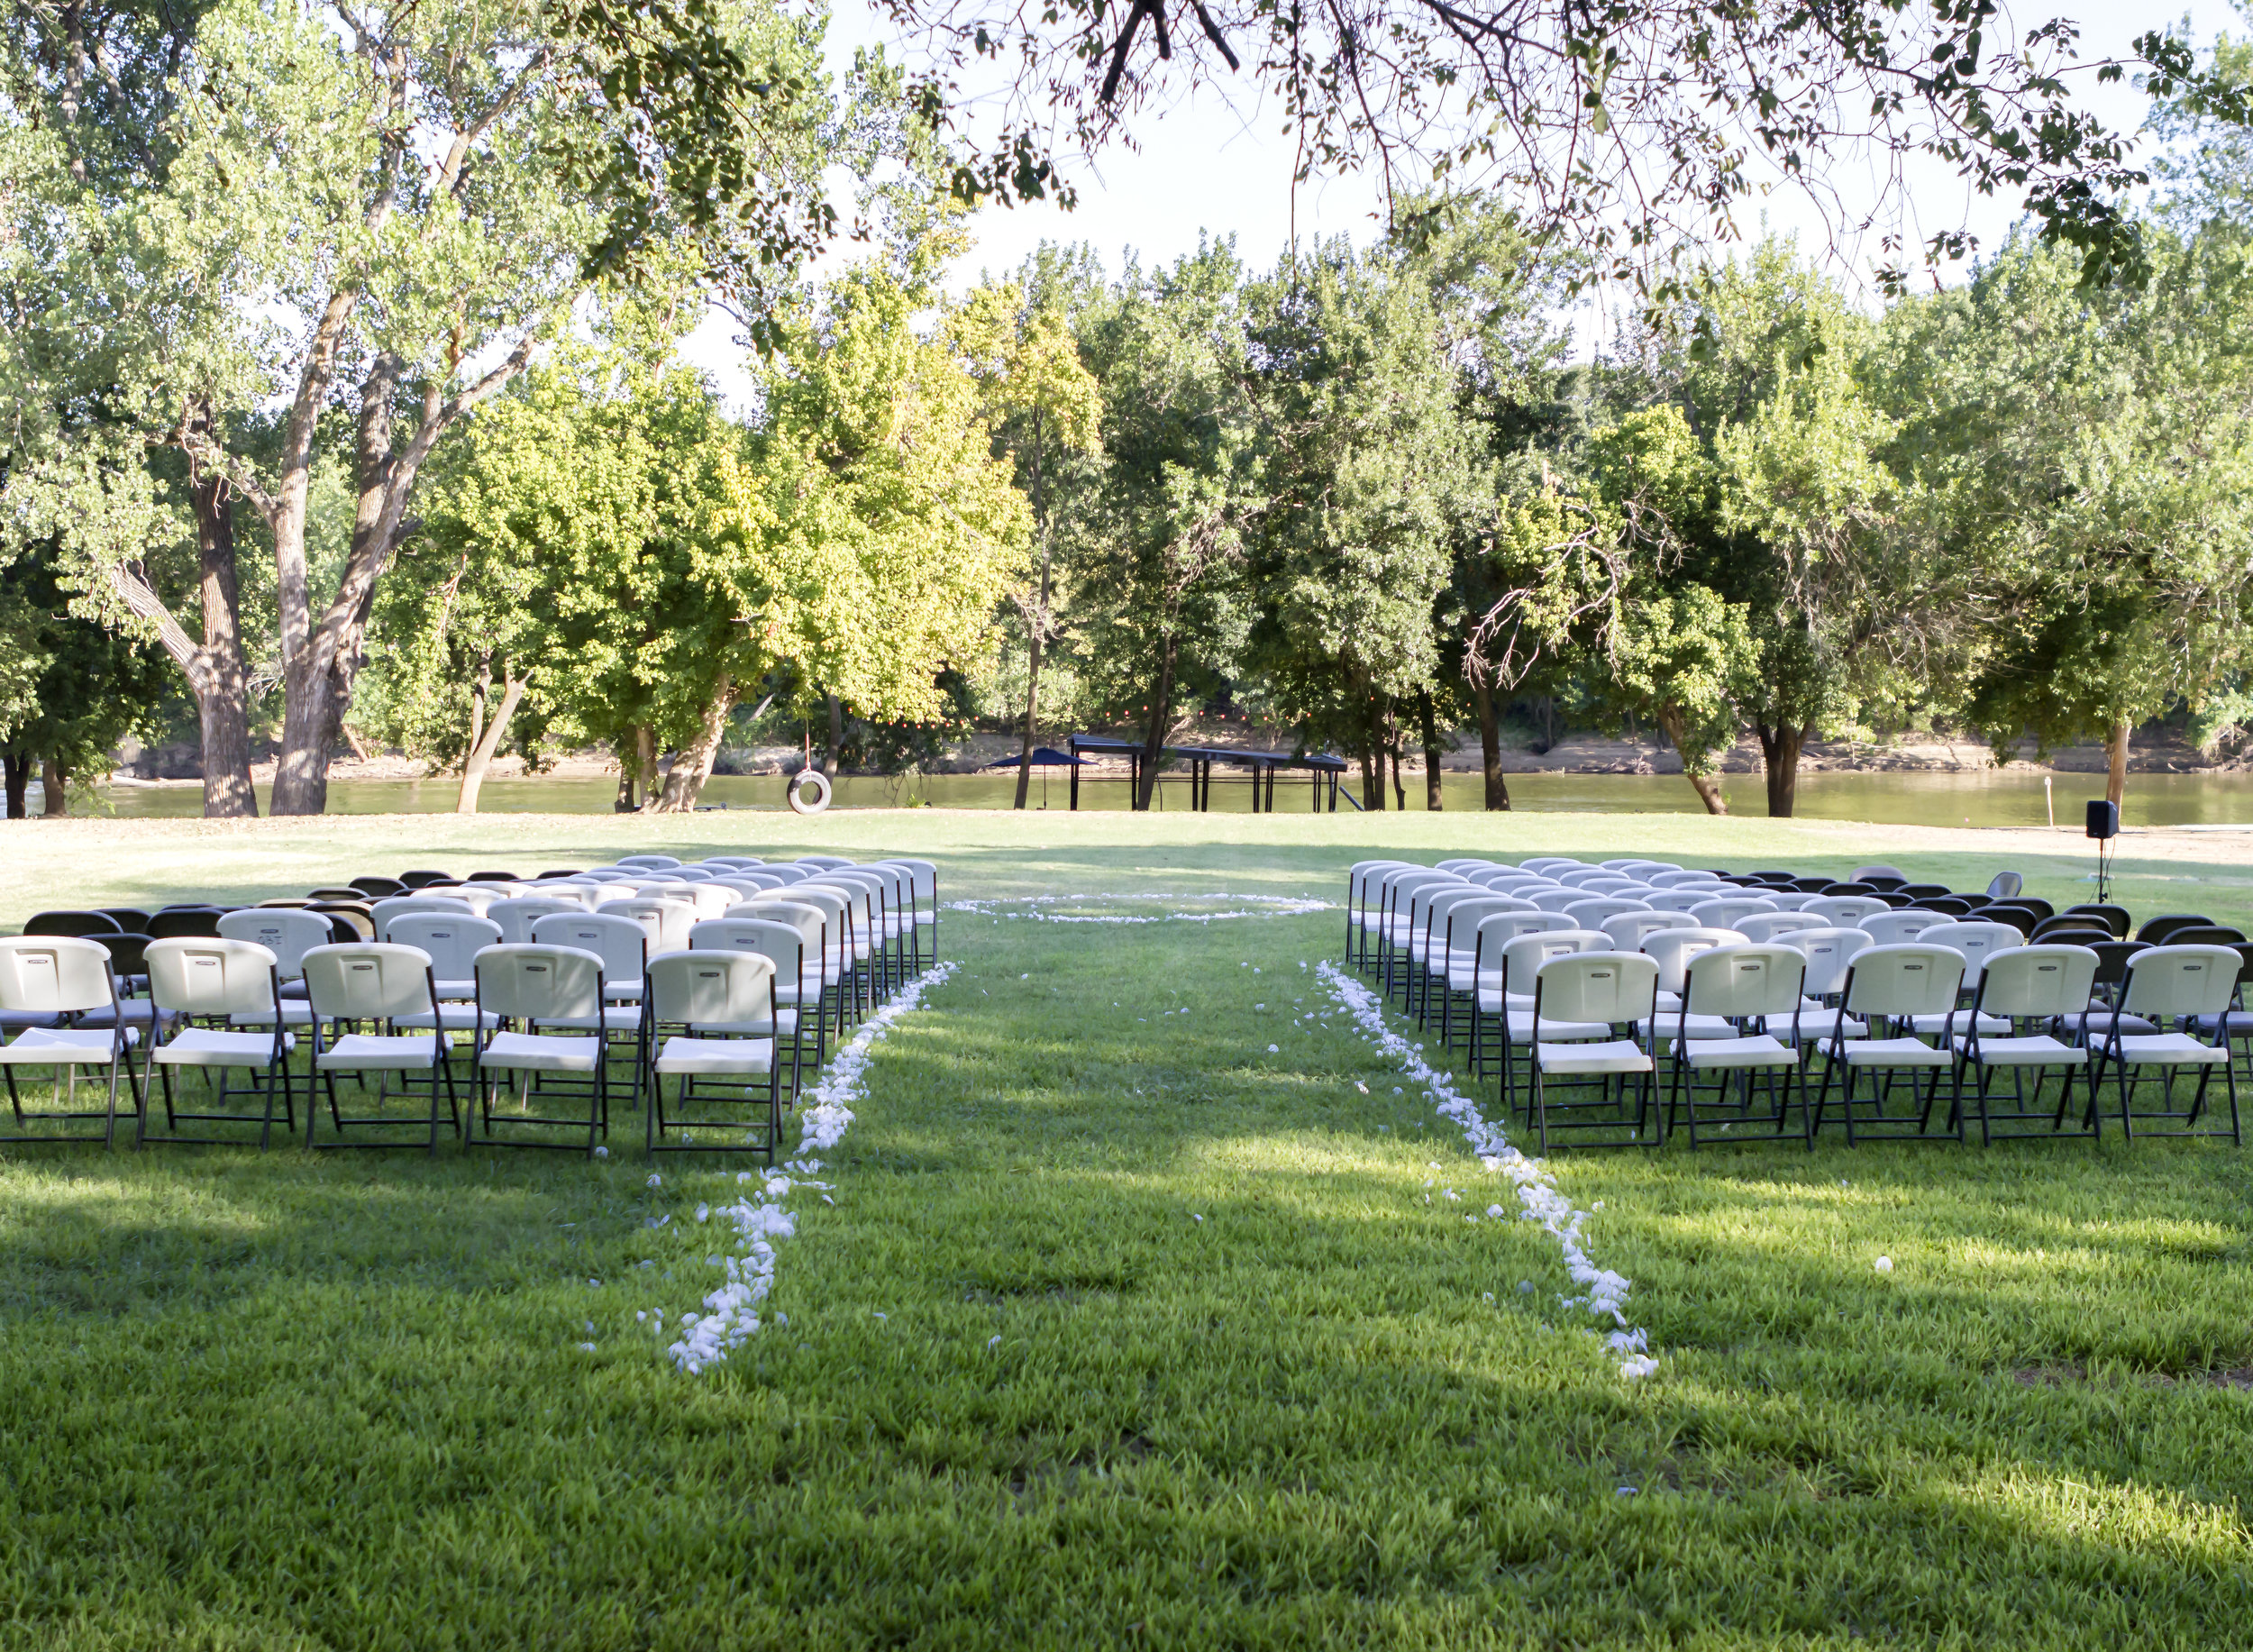 This backyard is very large, which allowed Kia and Madison to designate areas for different parts of their big day.  There was a setup for the ceremony and after the ceremony, everyone gathered at the nearby tables, patio, and house for the reception.  Photo credit:  Anna Johnson-Smith for Smith Family Photography